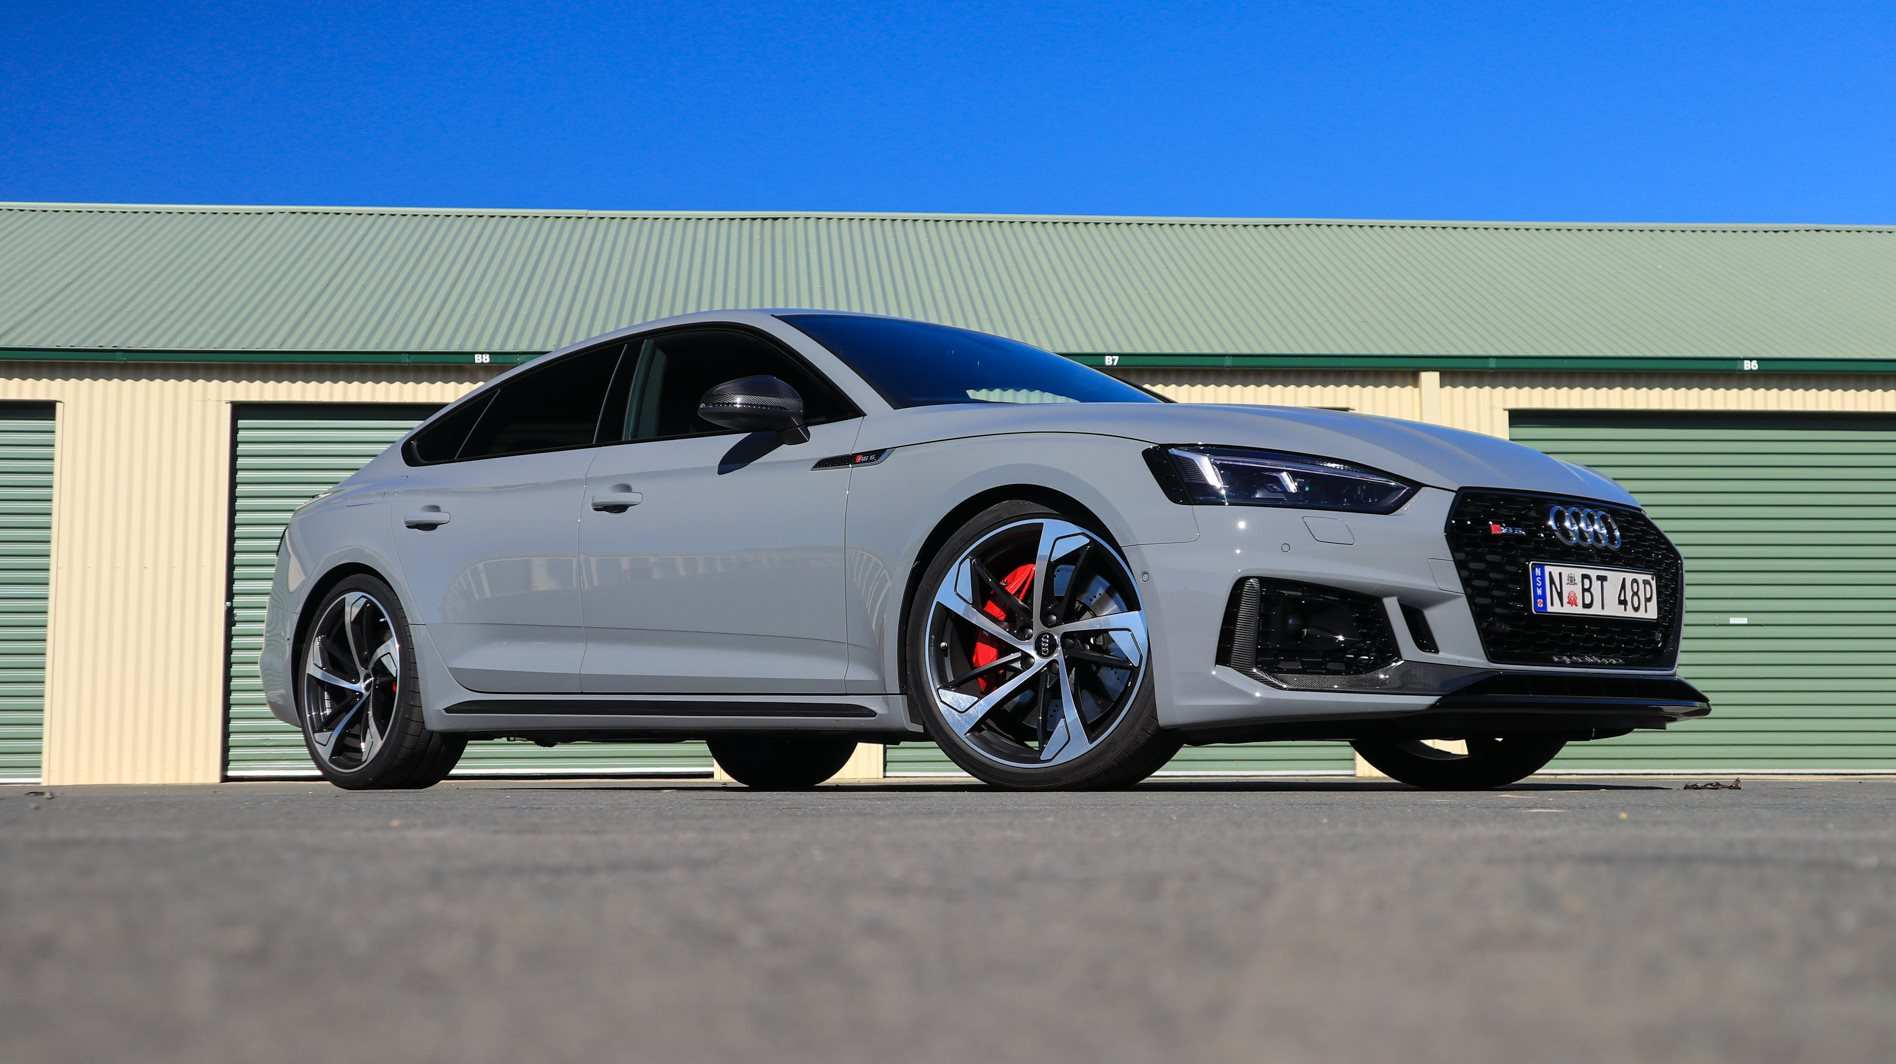 46 The Best 2019 Audi Rs5 Pricing